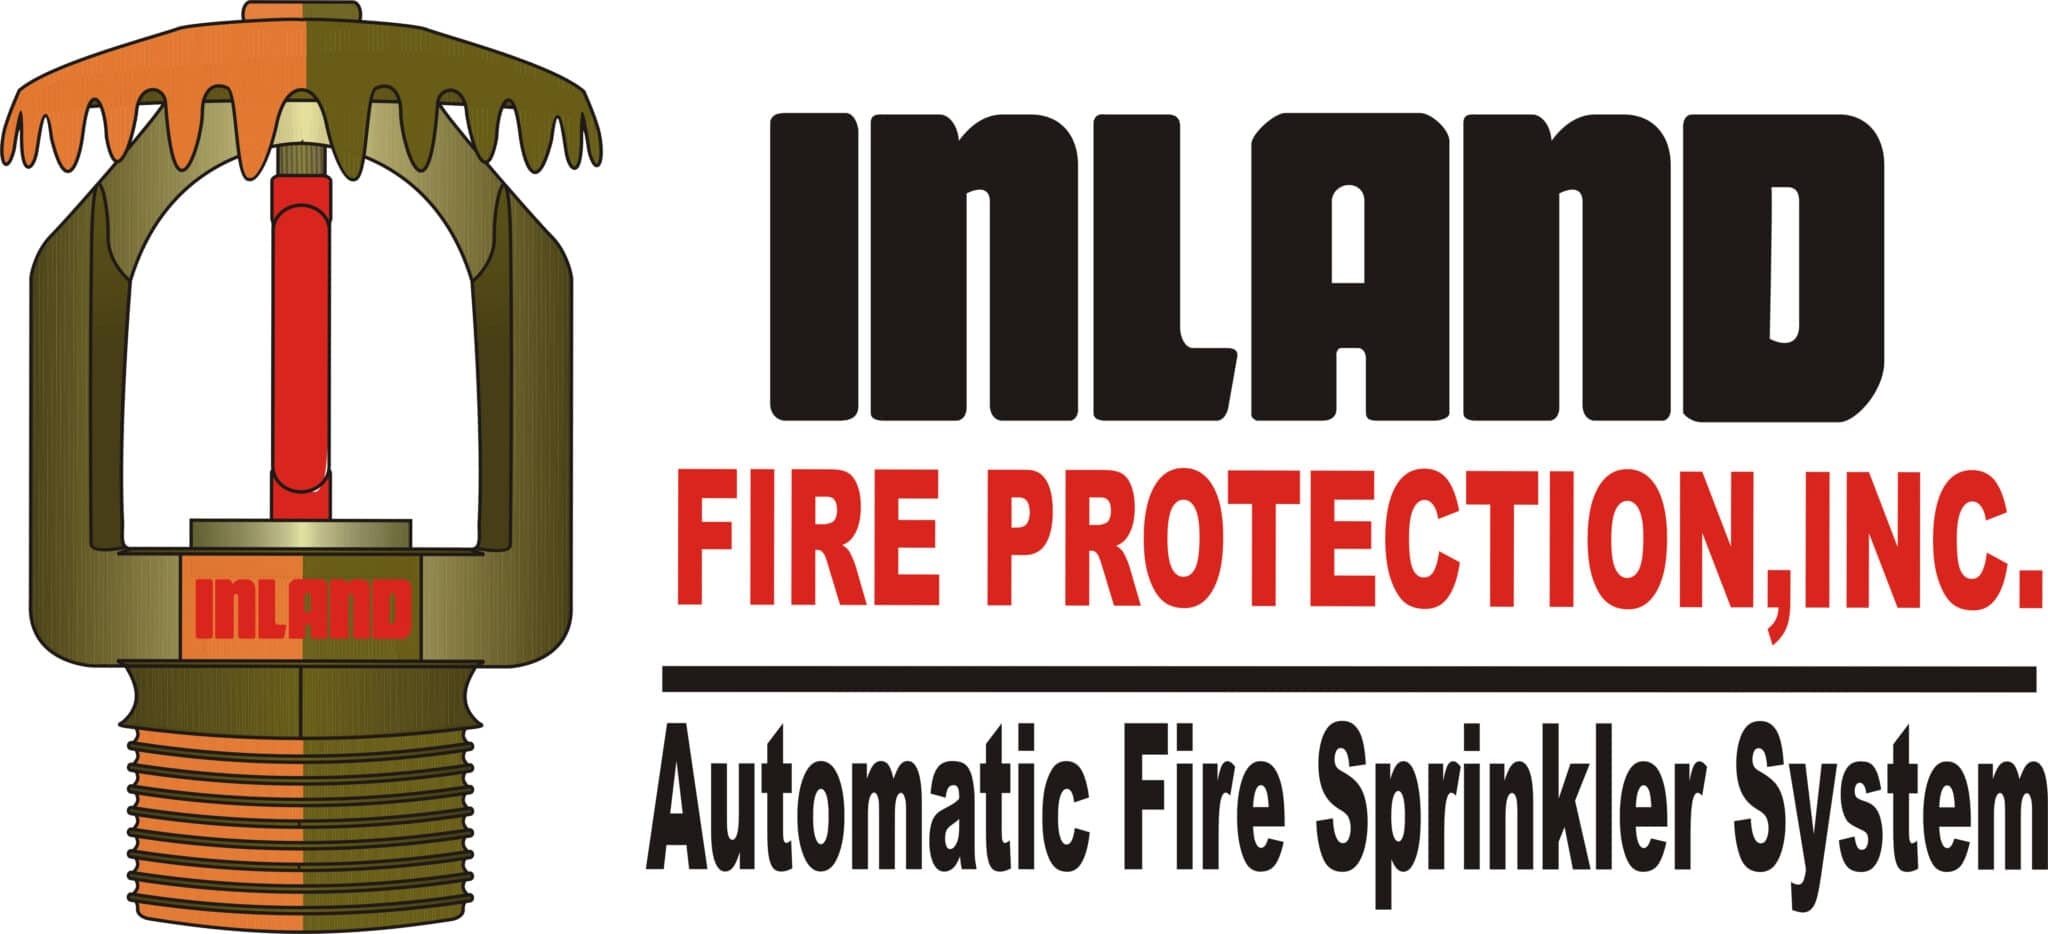 IFP logo - front sign (002)